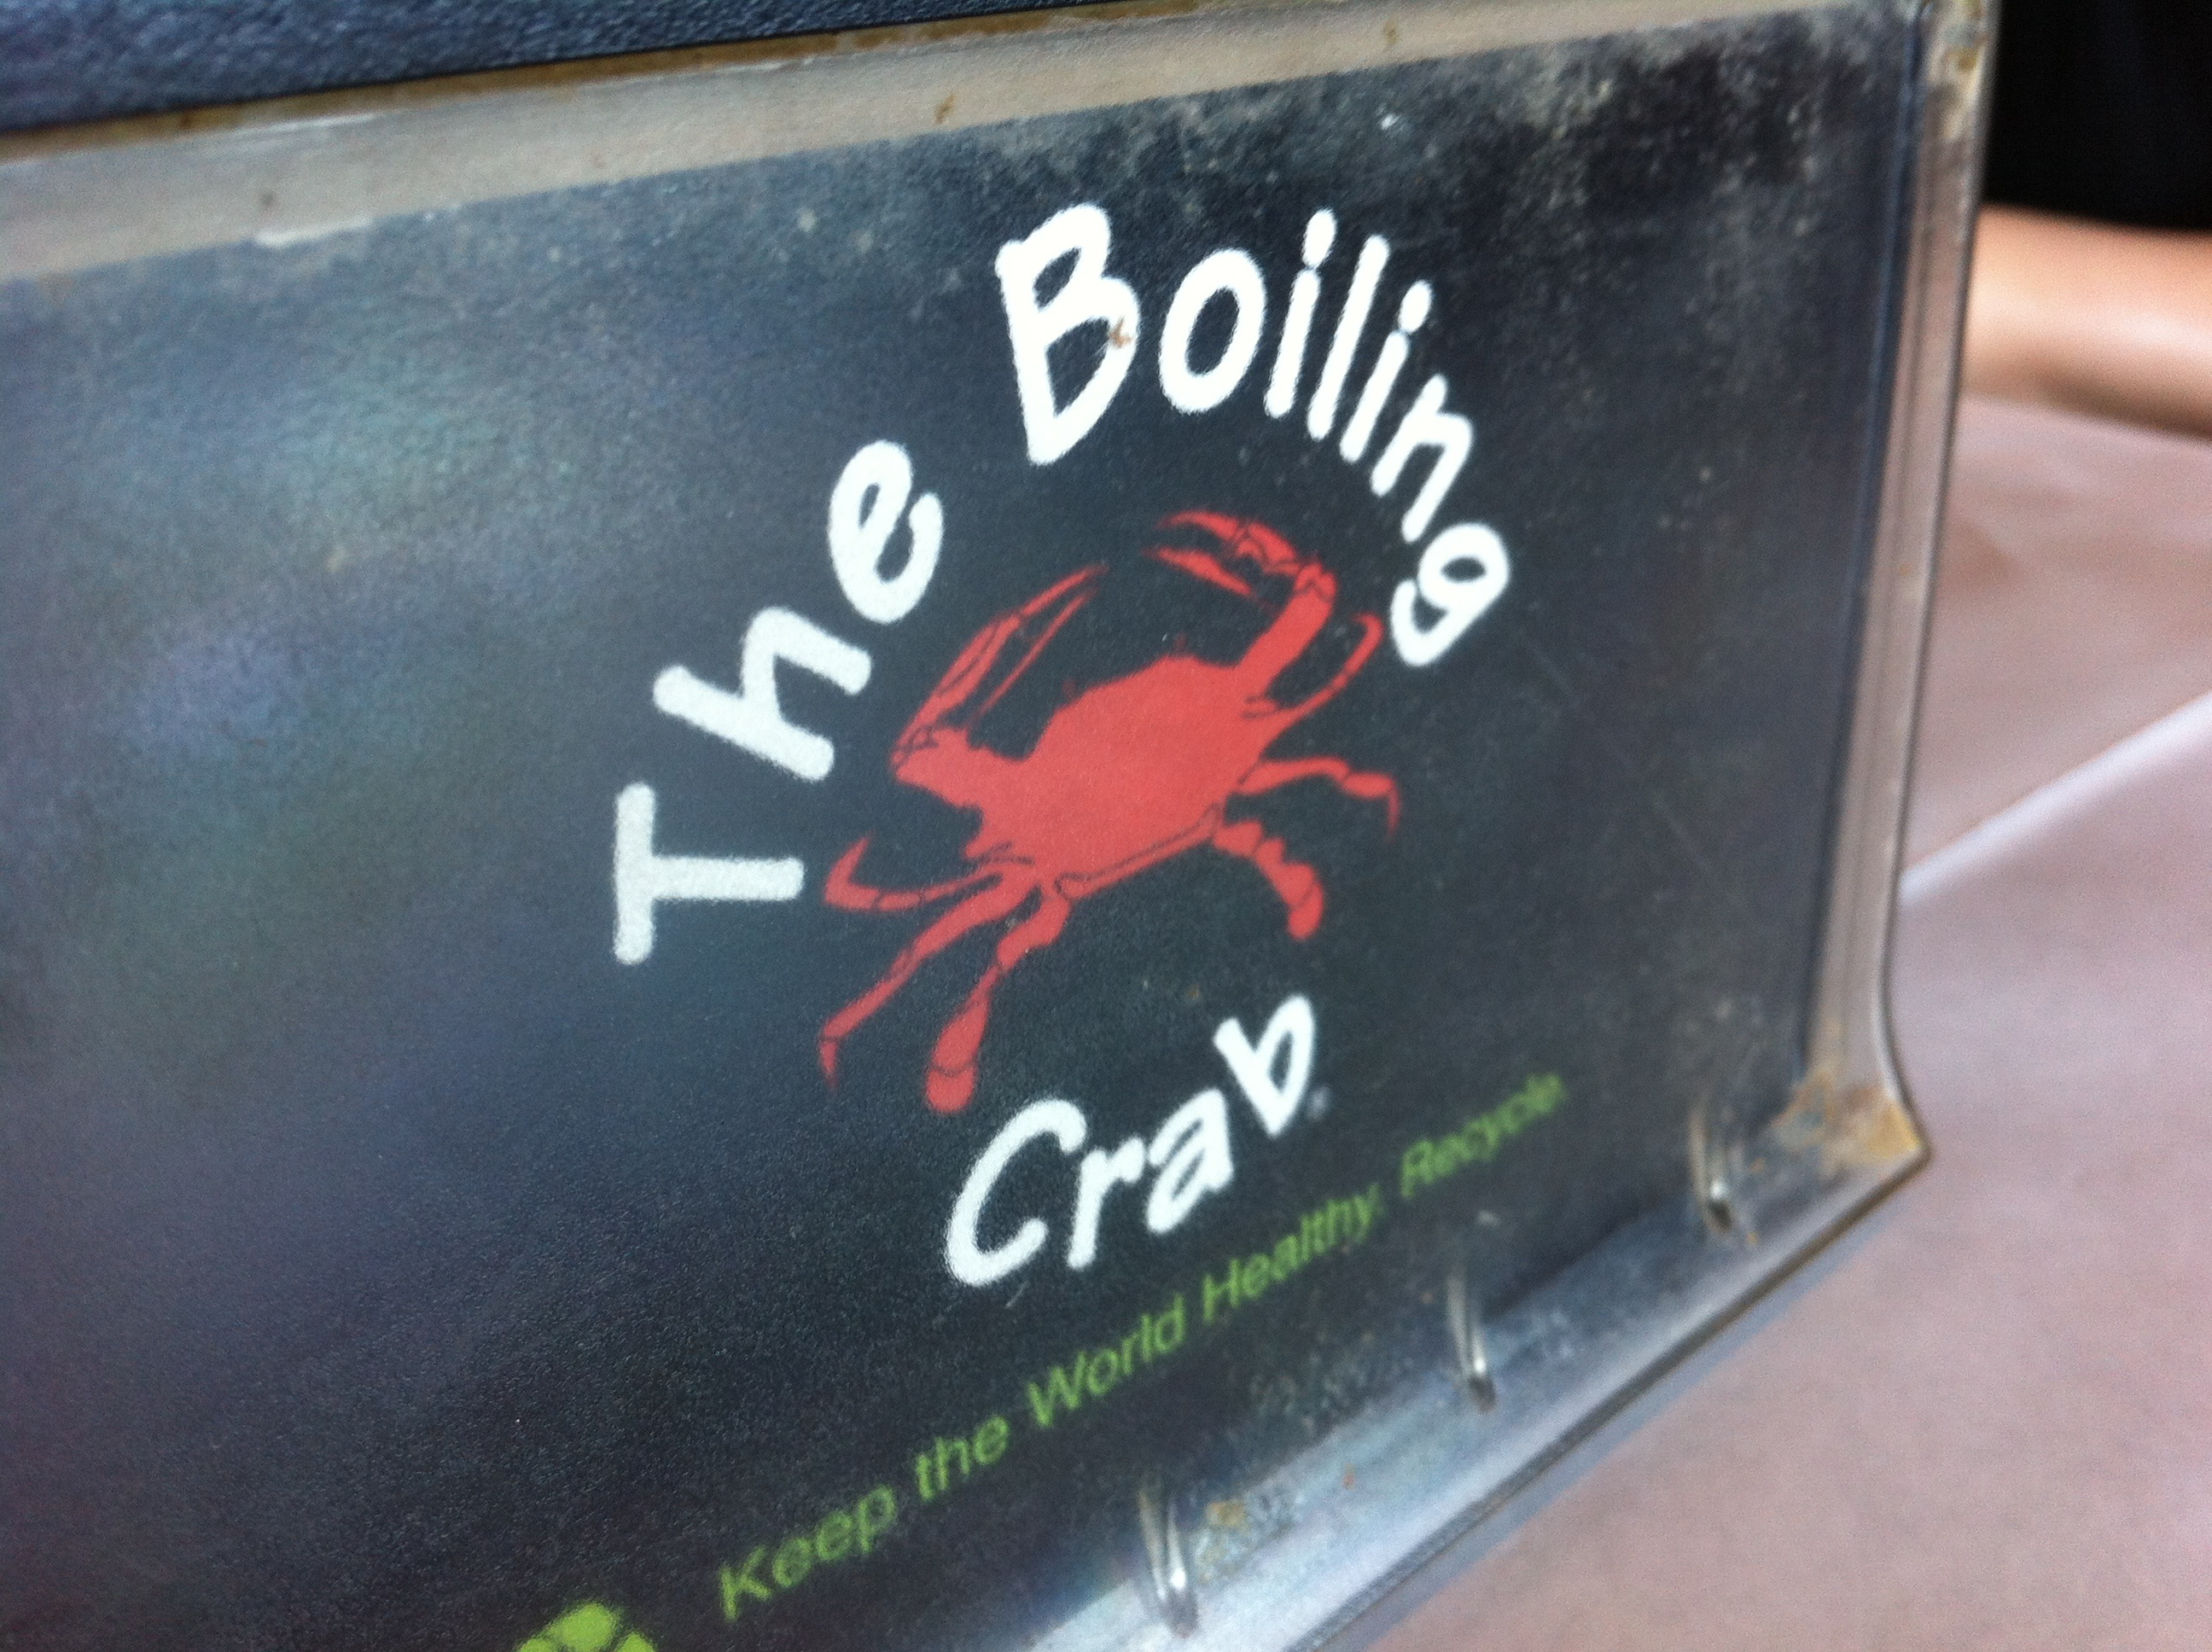 Round Table Capitol Expressway Review The Boiling Crab San Jose Off Curtner Avenue Nolans